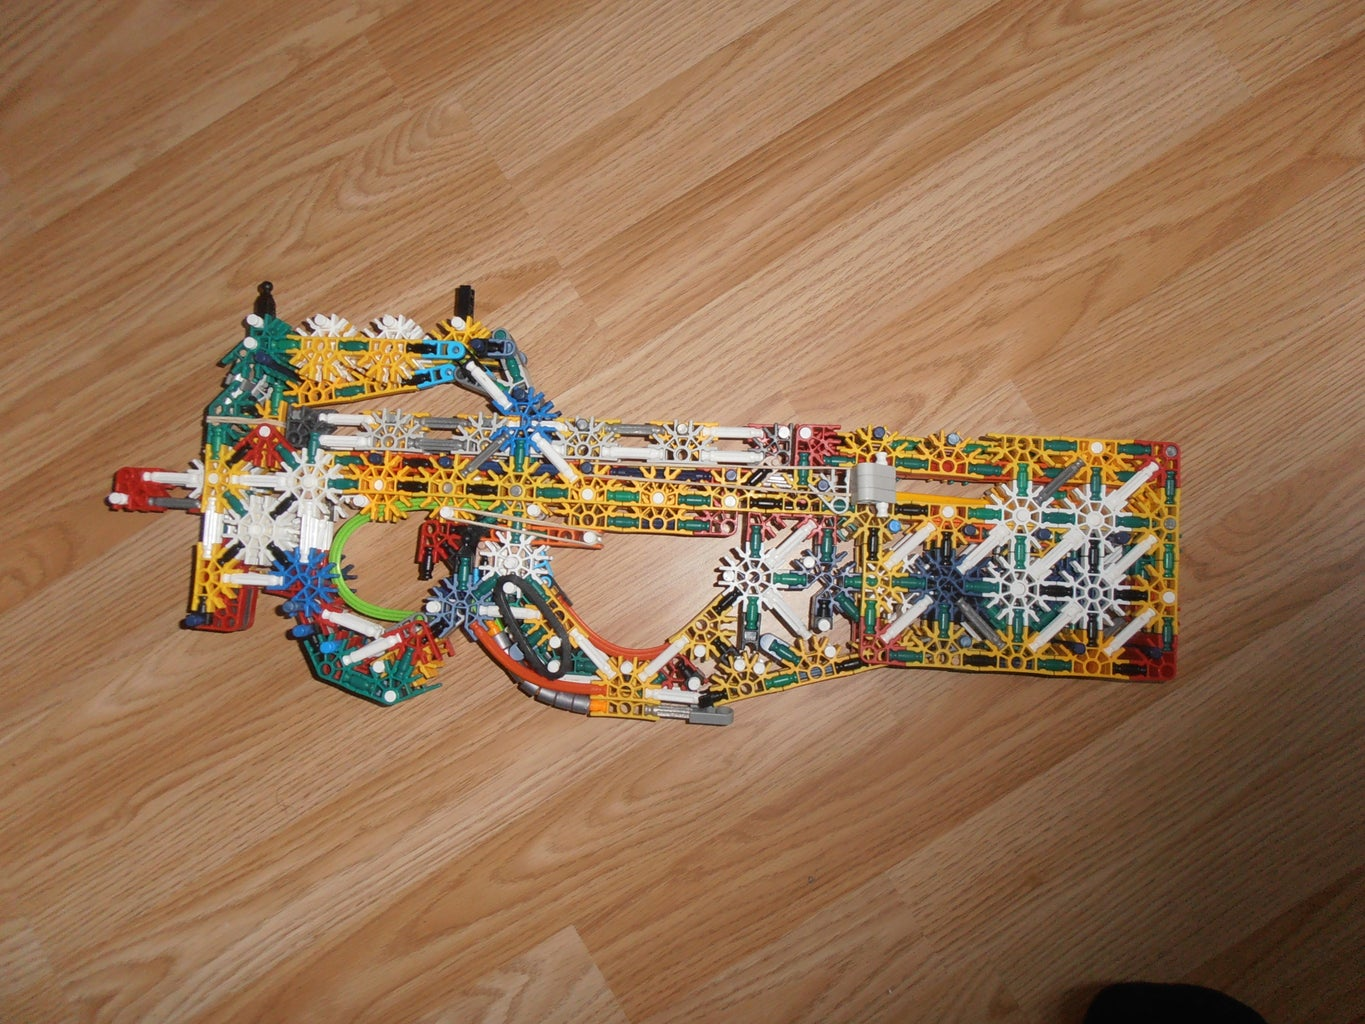 Some Failed or Unposted Knex Guns.